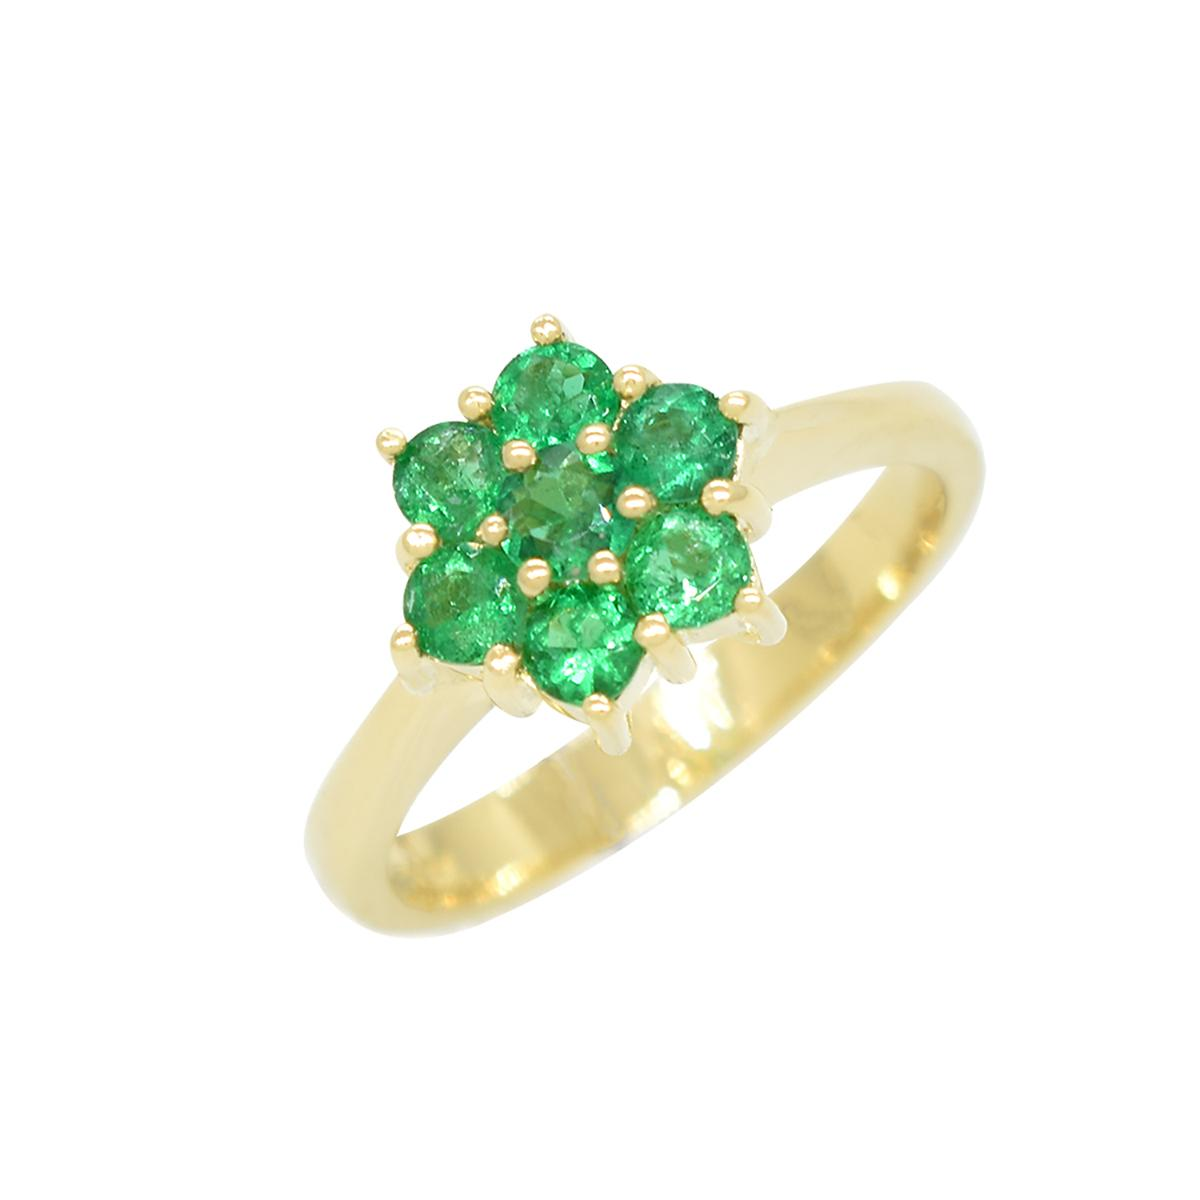 cluster-ring-in-18k-yellow-gold-with-7-round-cut-emeralds